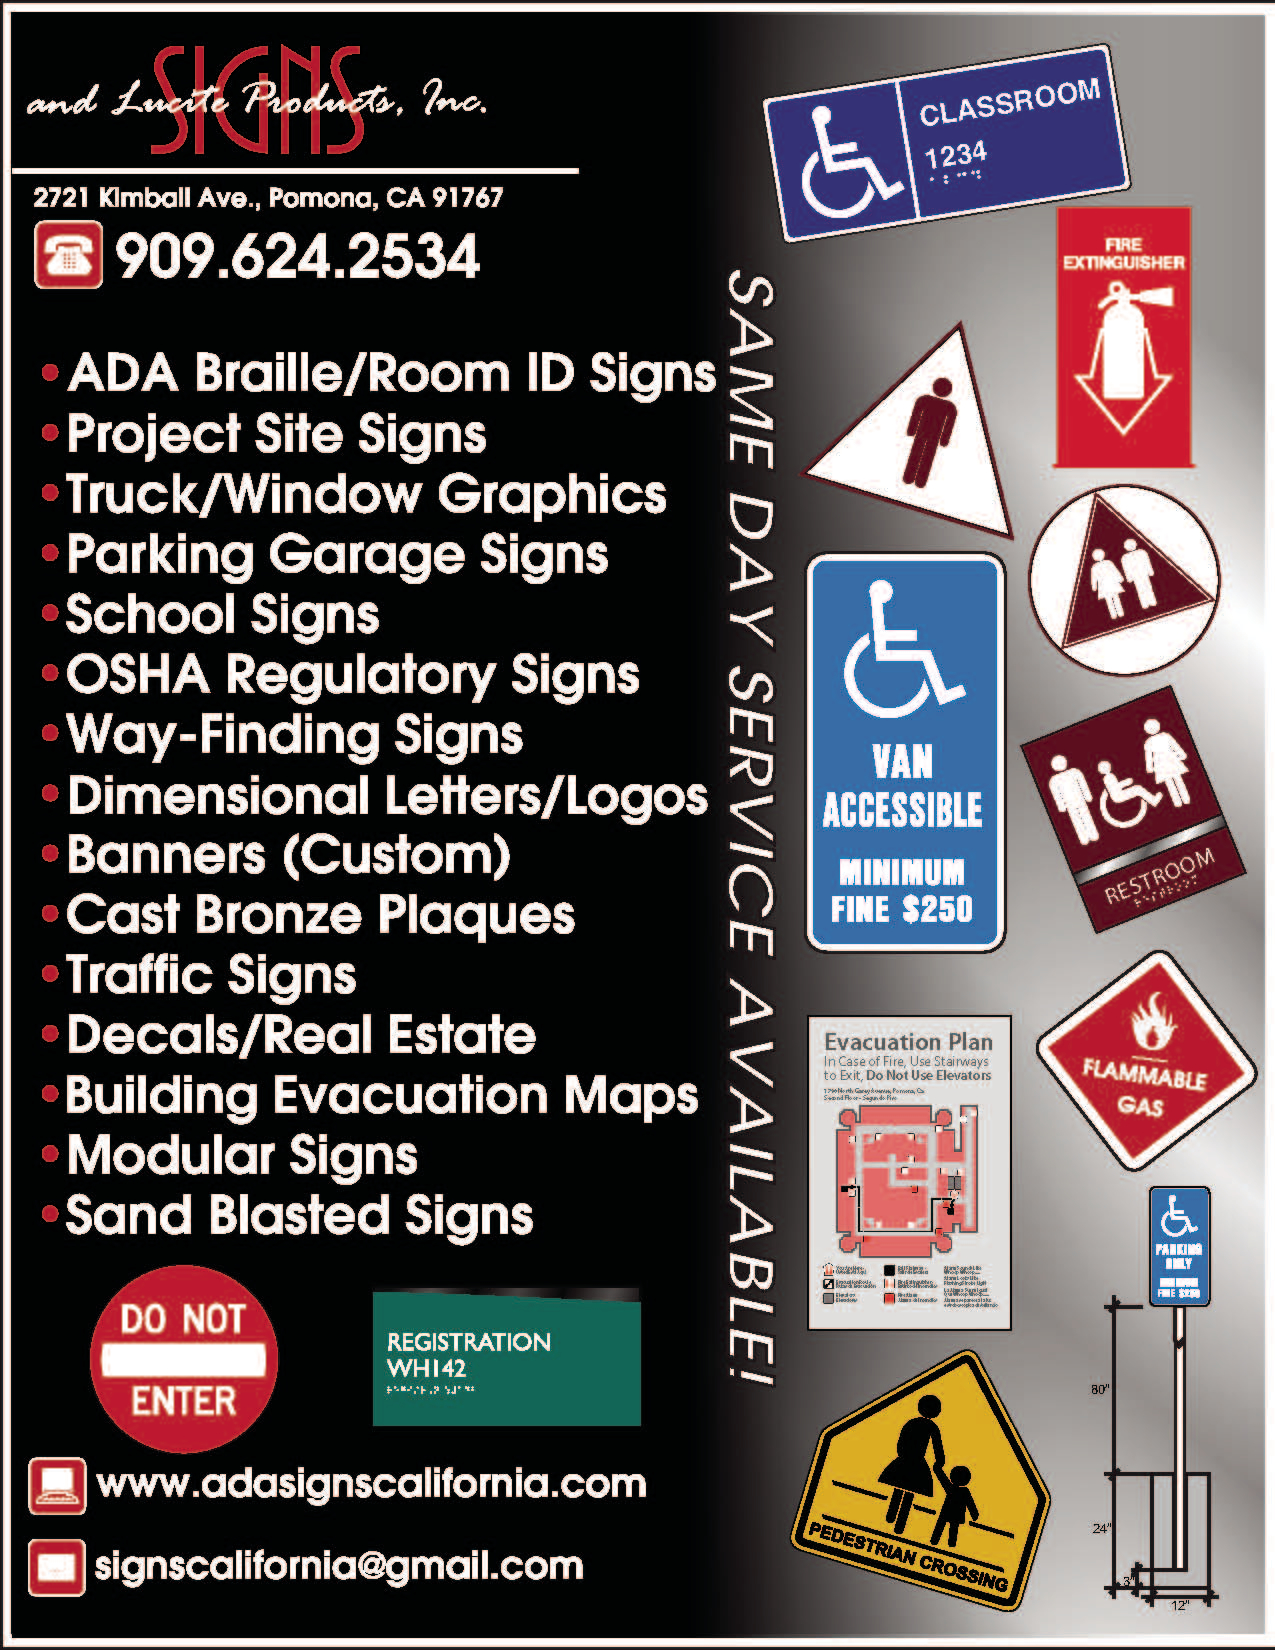 Signs & Lucite Products, Inc - ad image